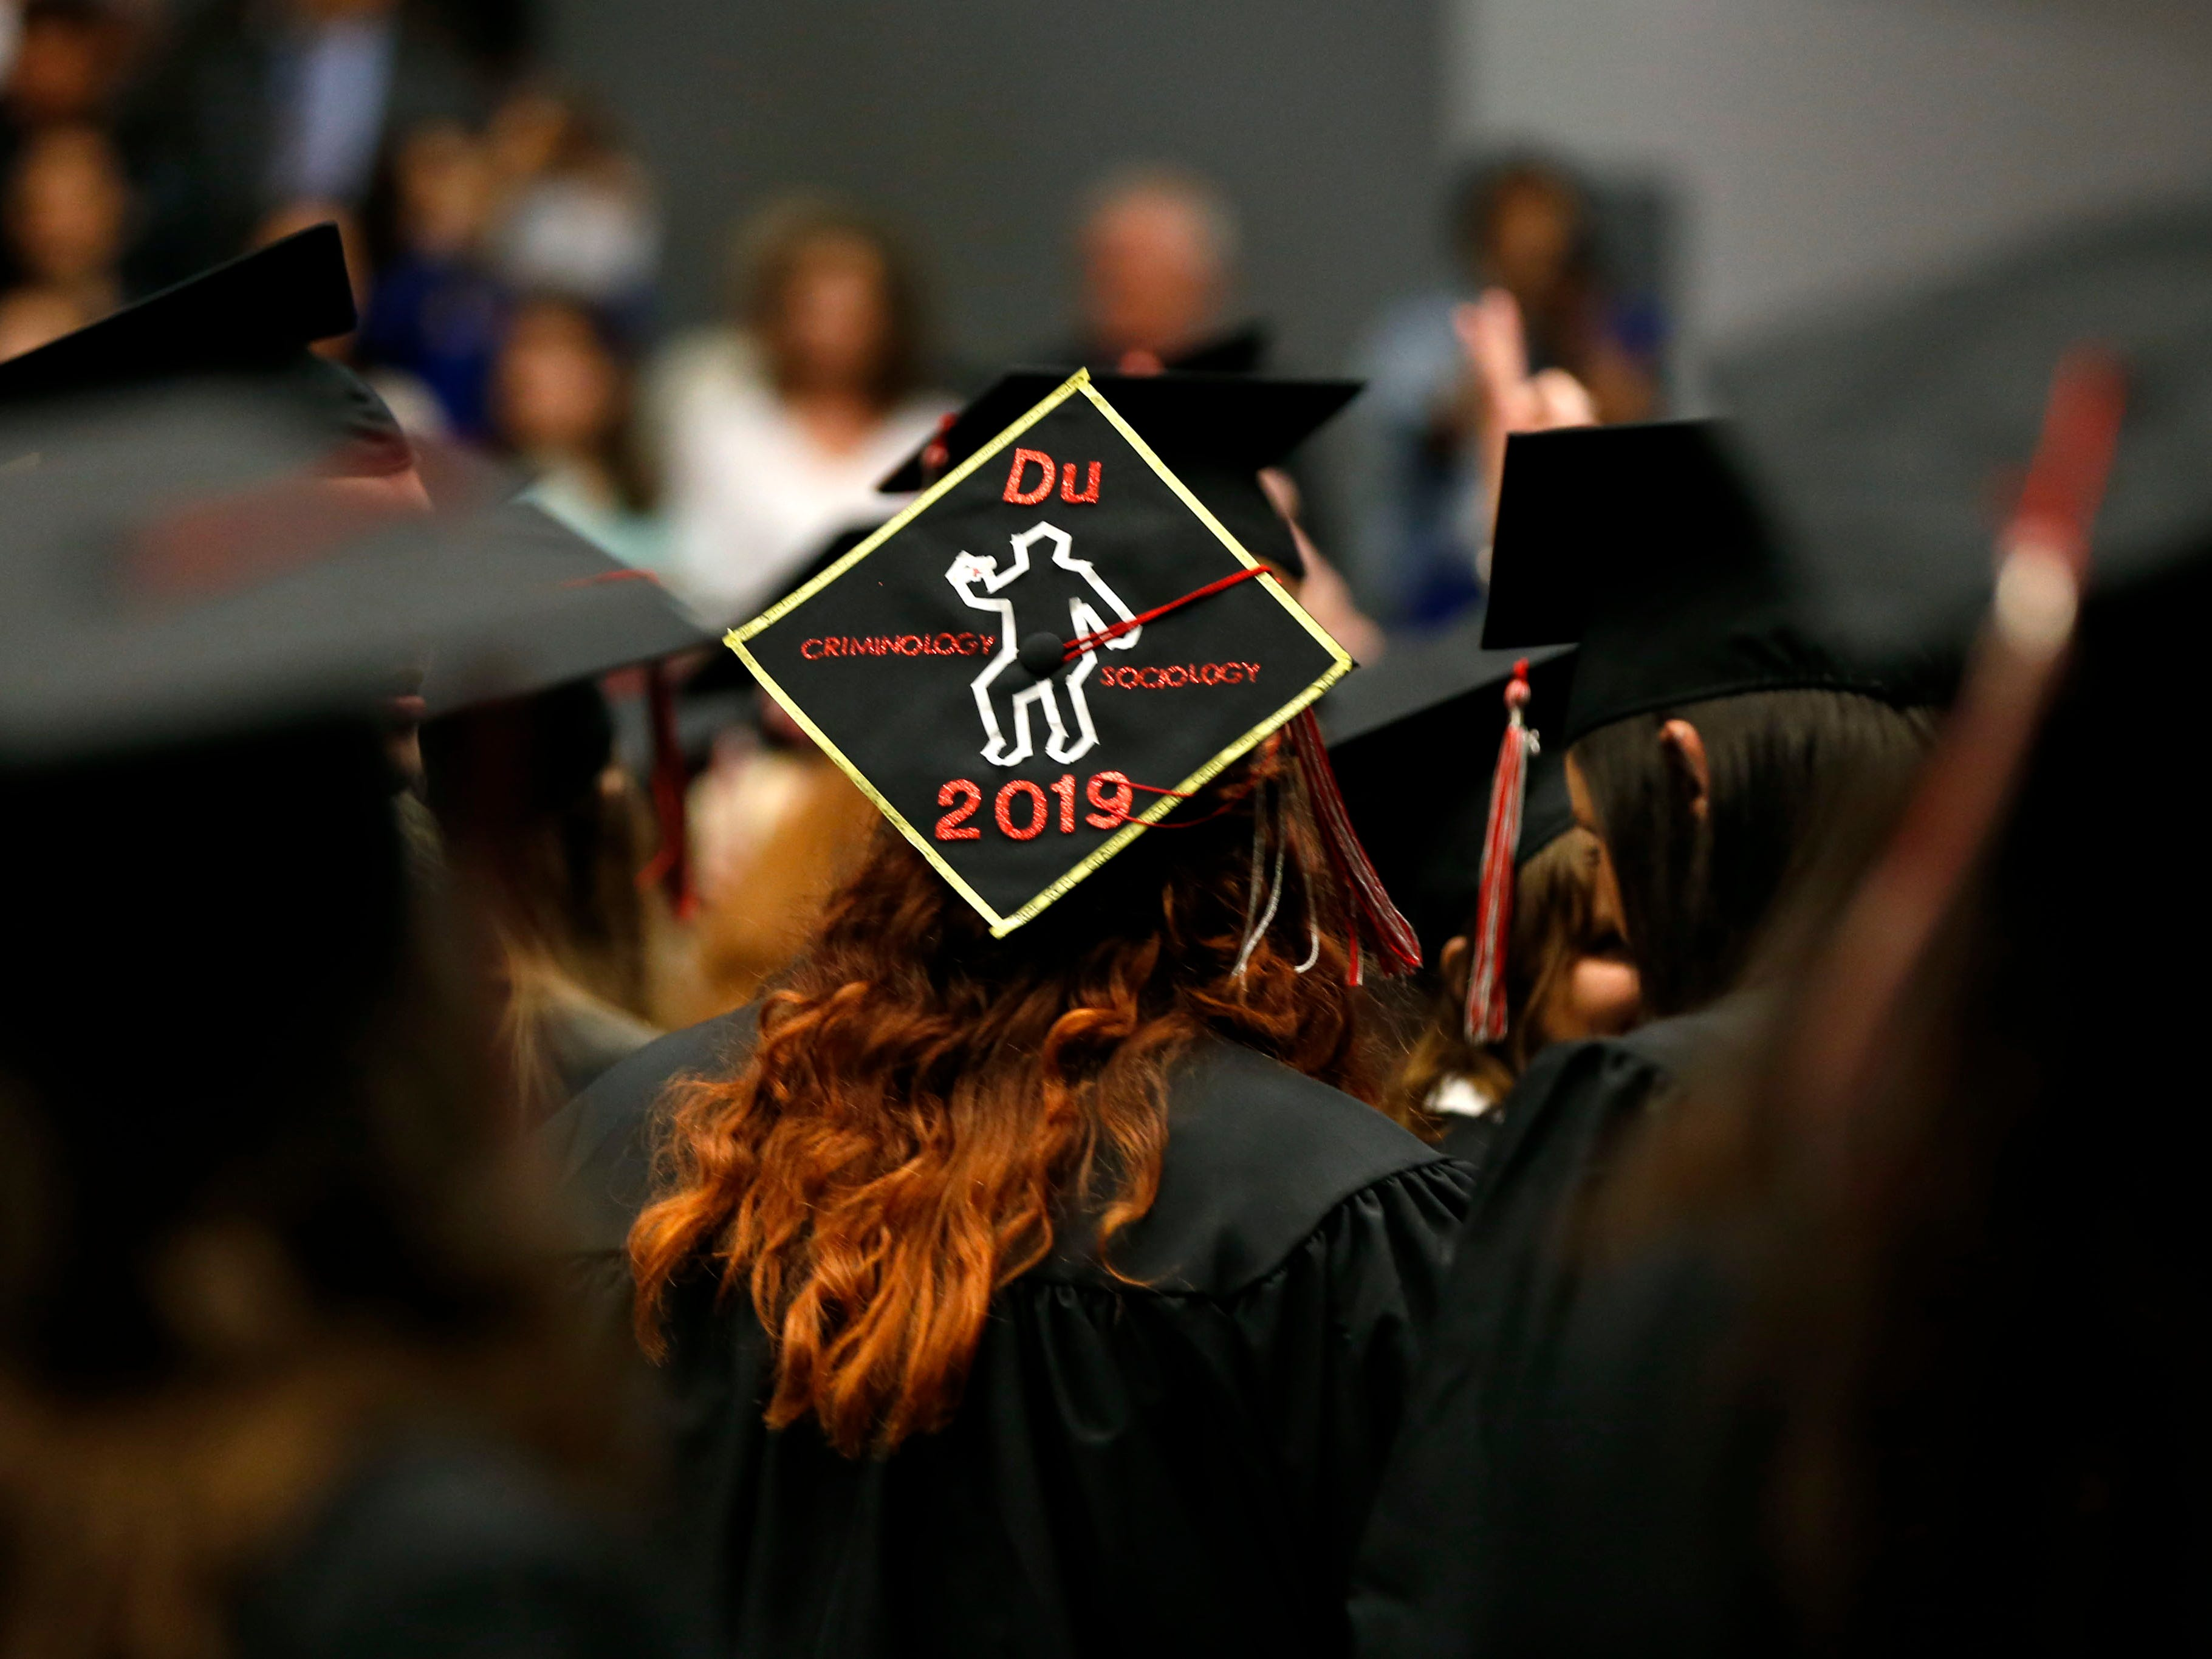 Scenes from the Drury University Commencement Ceremony at the O'Reilly Family Event Center on Saturday, May 11, 2019.